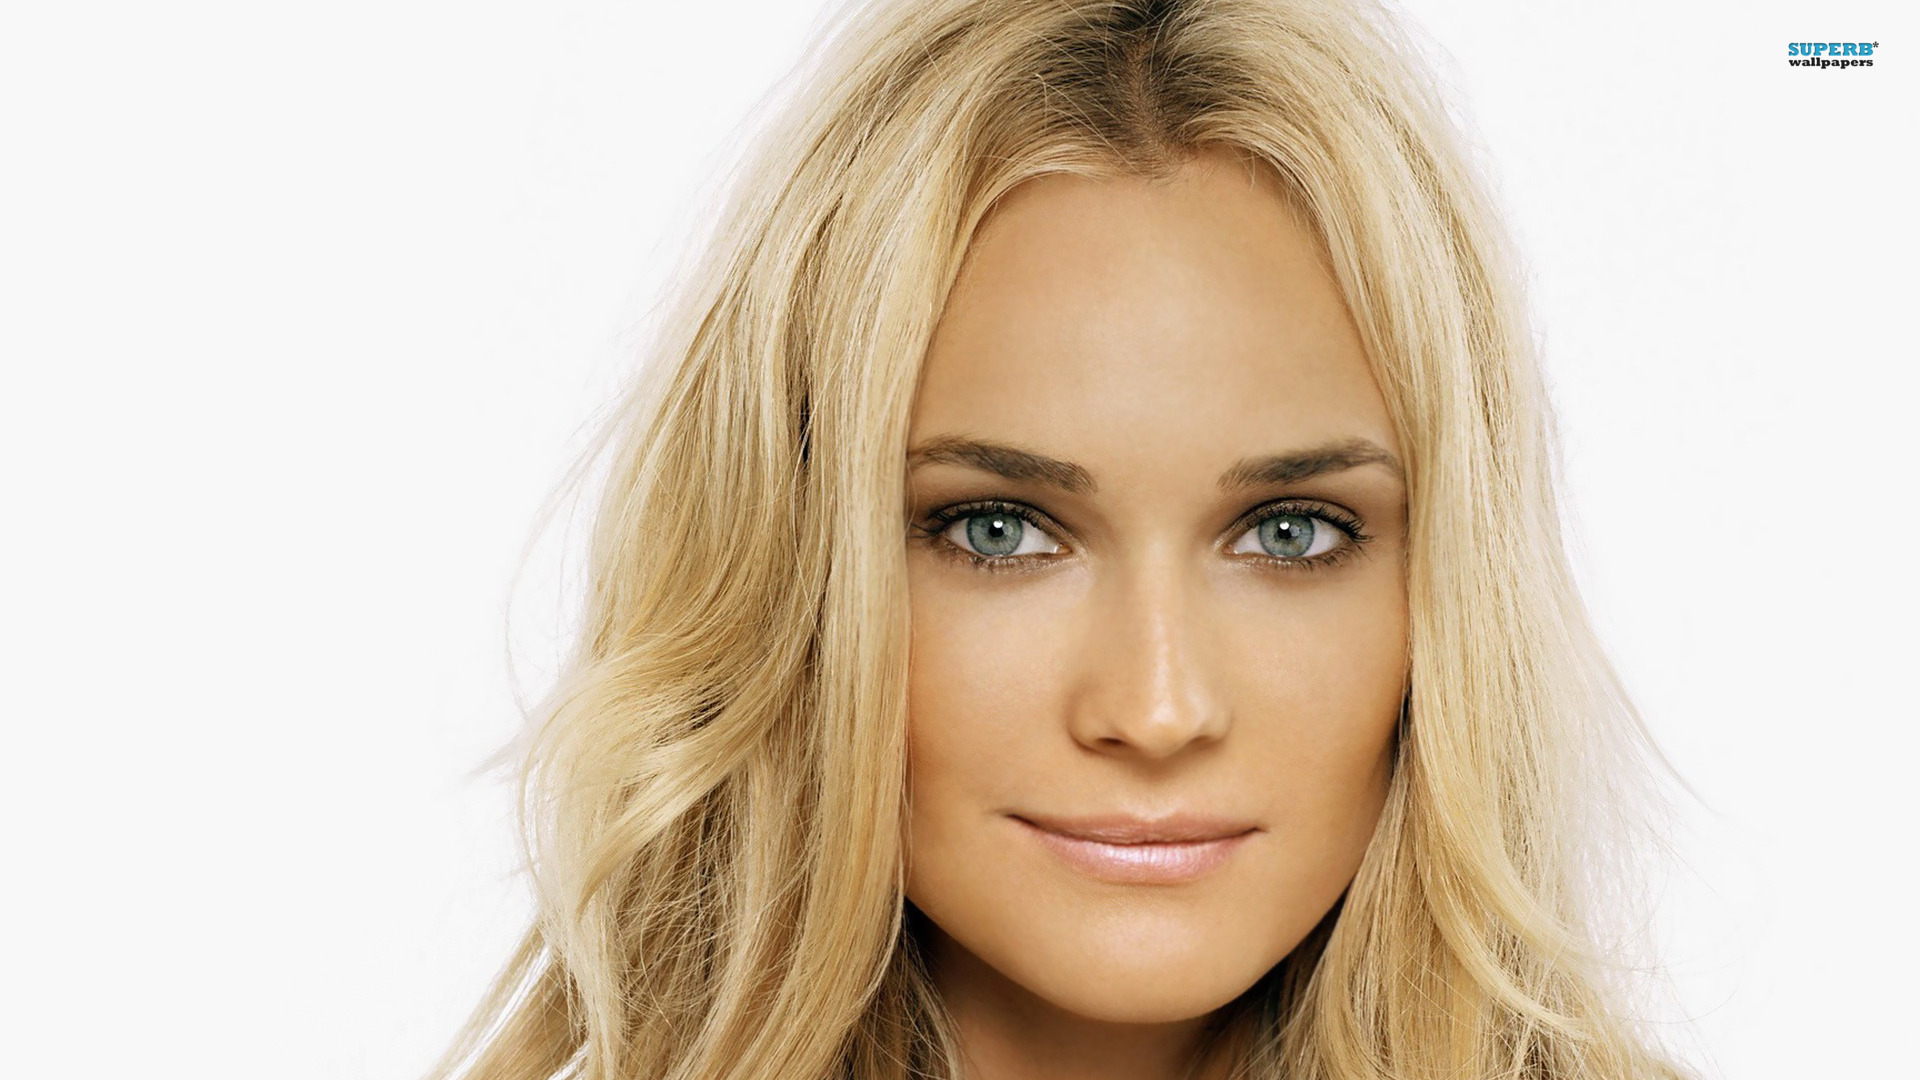 Diane Kruger wallpaper 1920x1080